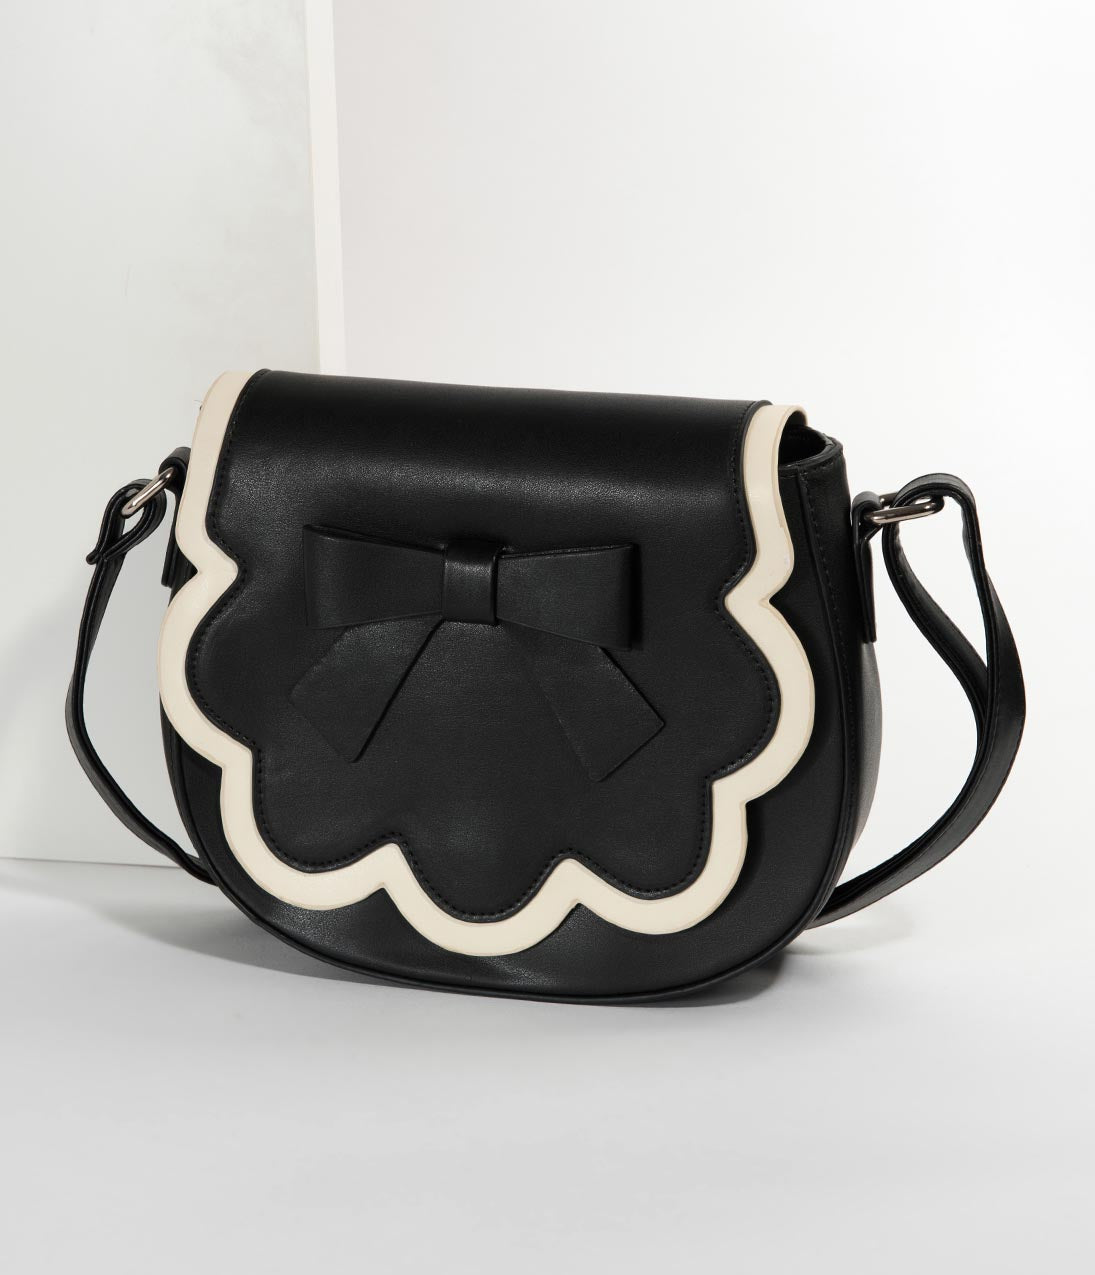 1950s Handbags, Purses, and Evening Bag Styles Banned Black  White Leatherette Rocco Saddle Crossbody Purse $52.00 AT vintagedancer.com